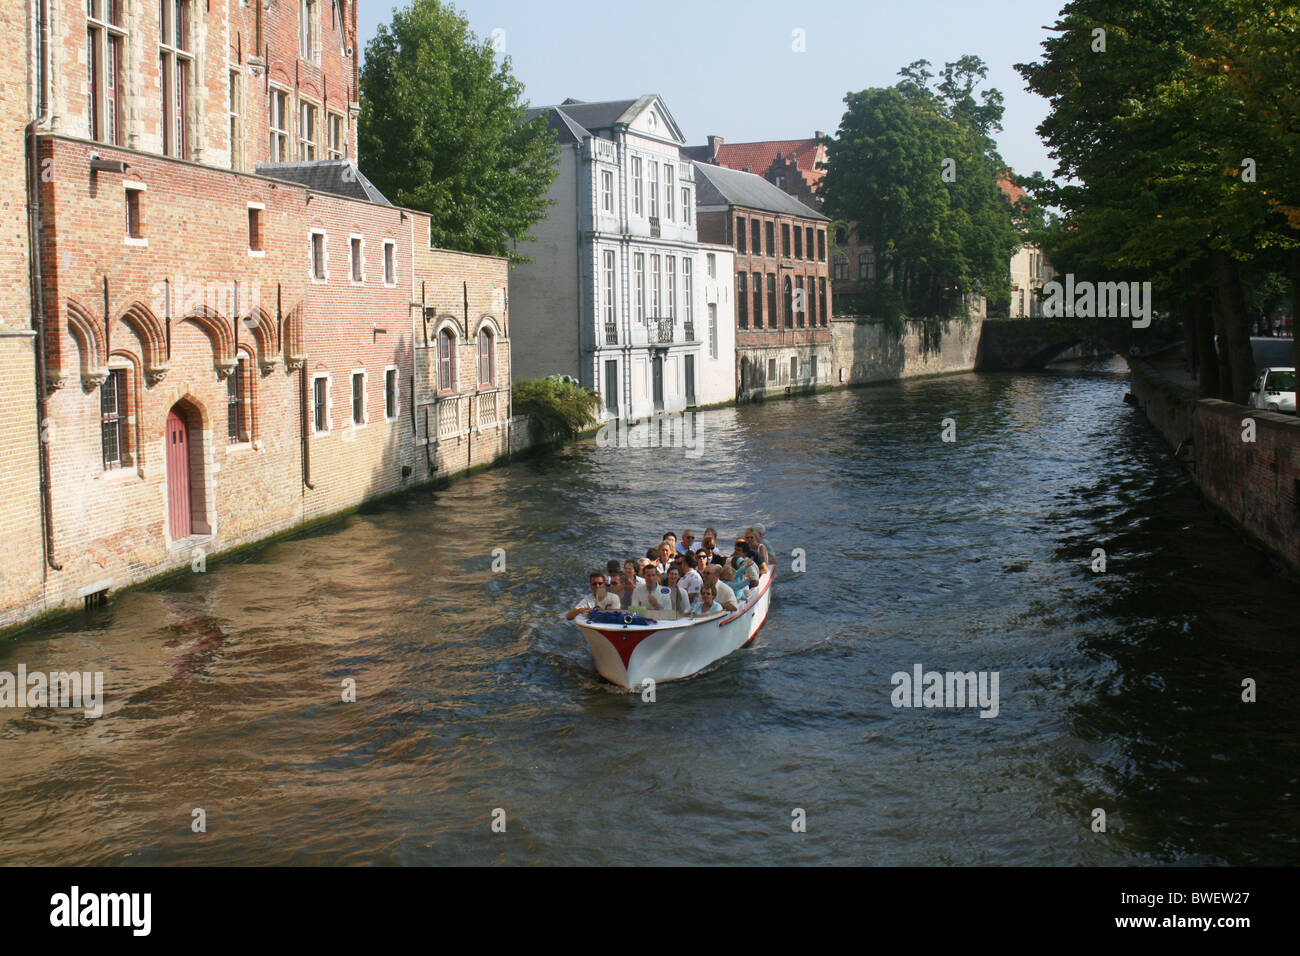 Boat rides on the canal, Bruges, Belgium - Stock Image